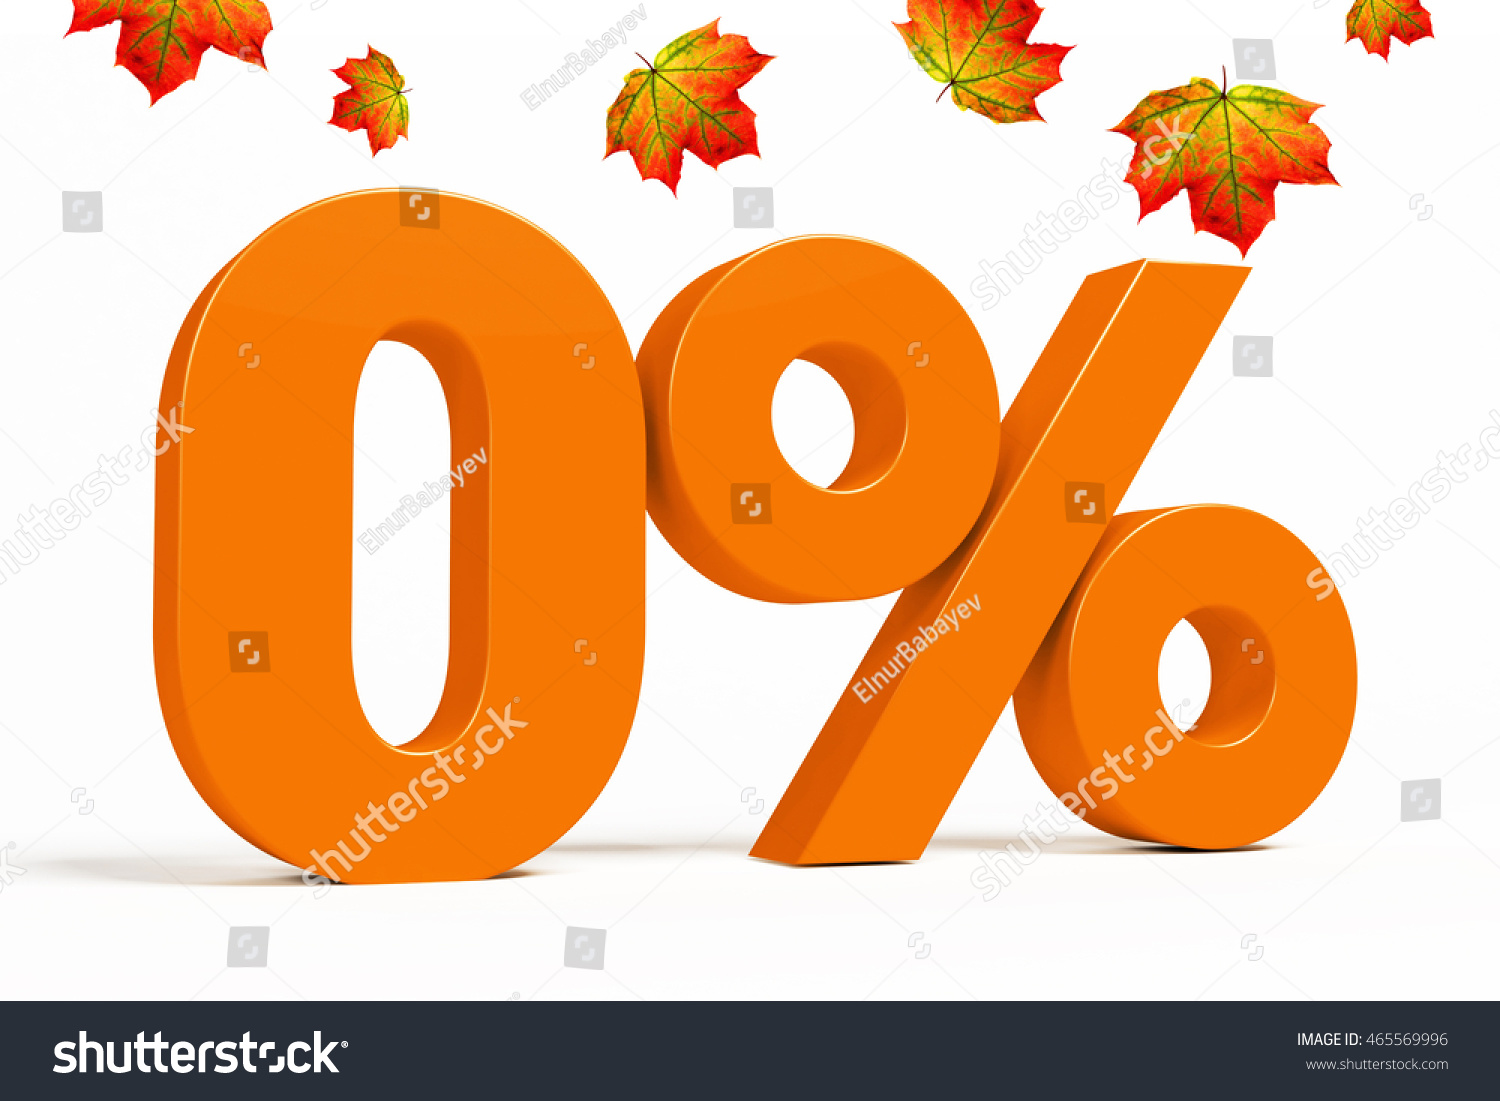 Orange 3d 0 percent text on stock illustration 465569996 orange 3d 0 percent text on white background with leaves for autumn sale campaigns buycottarizona